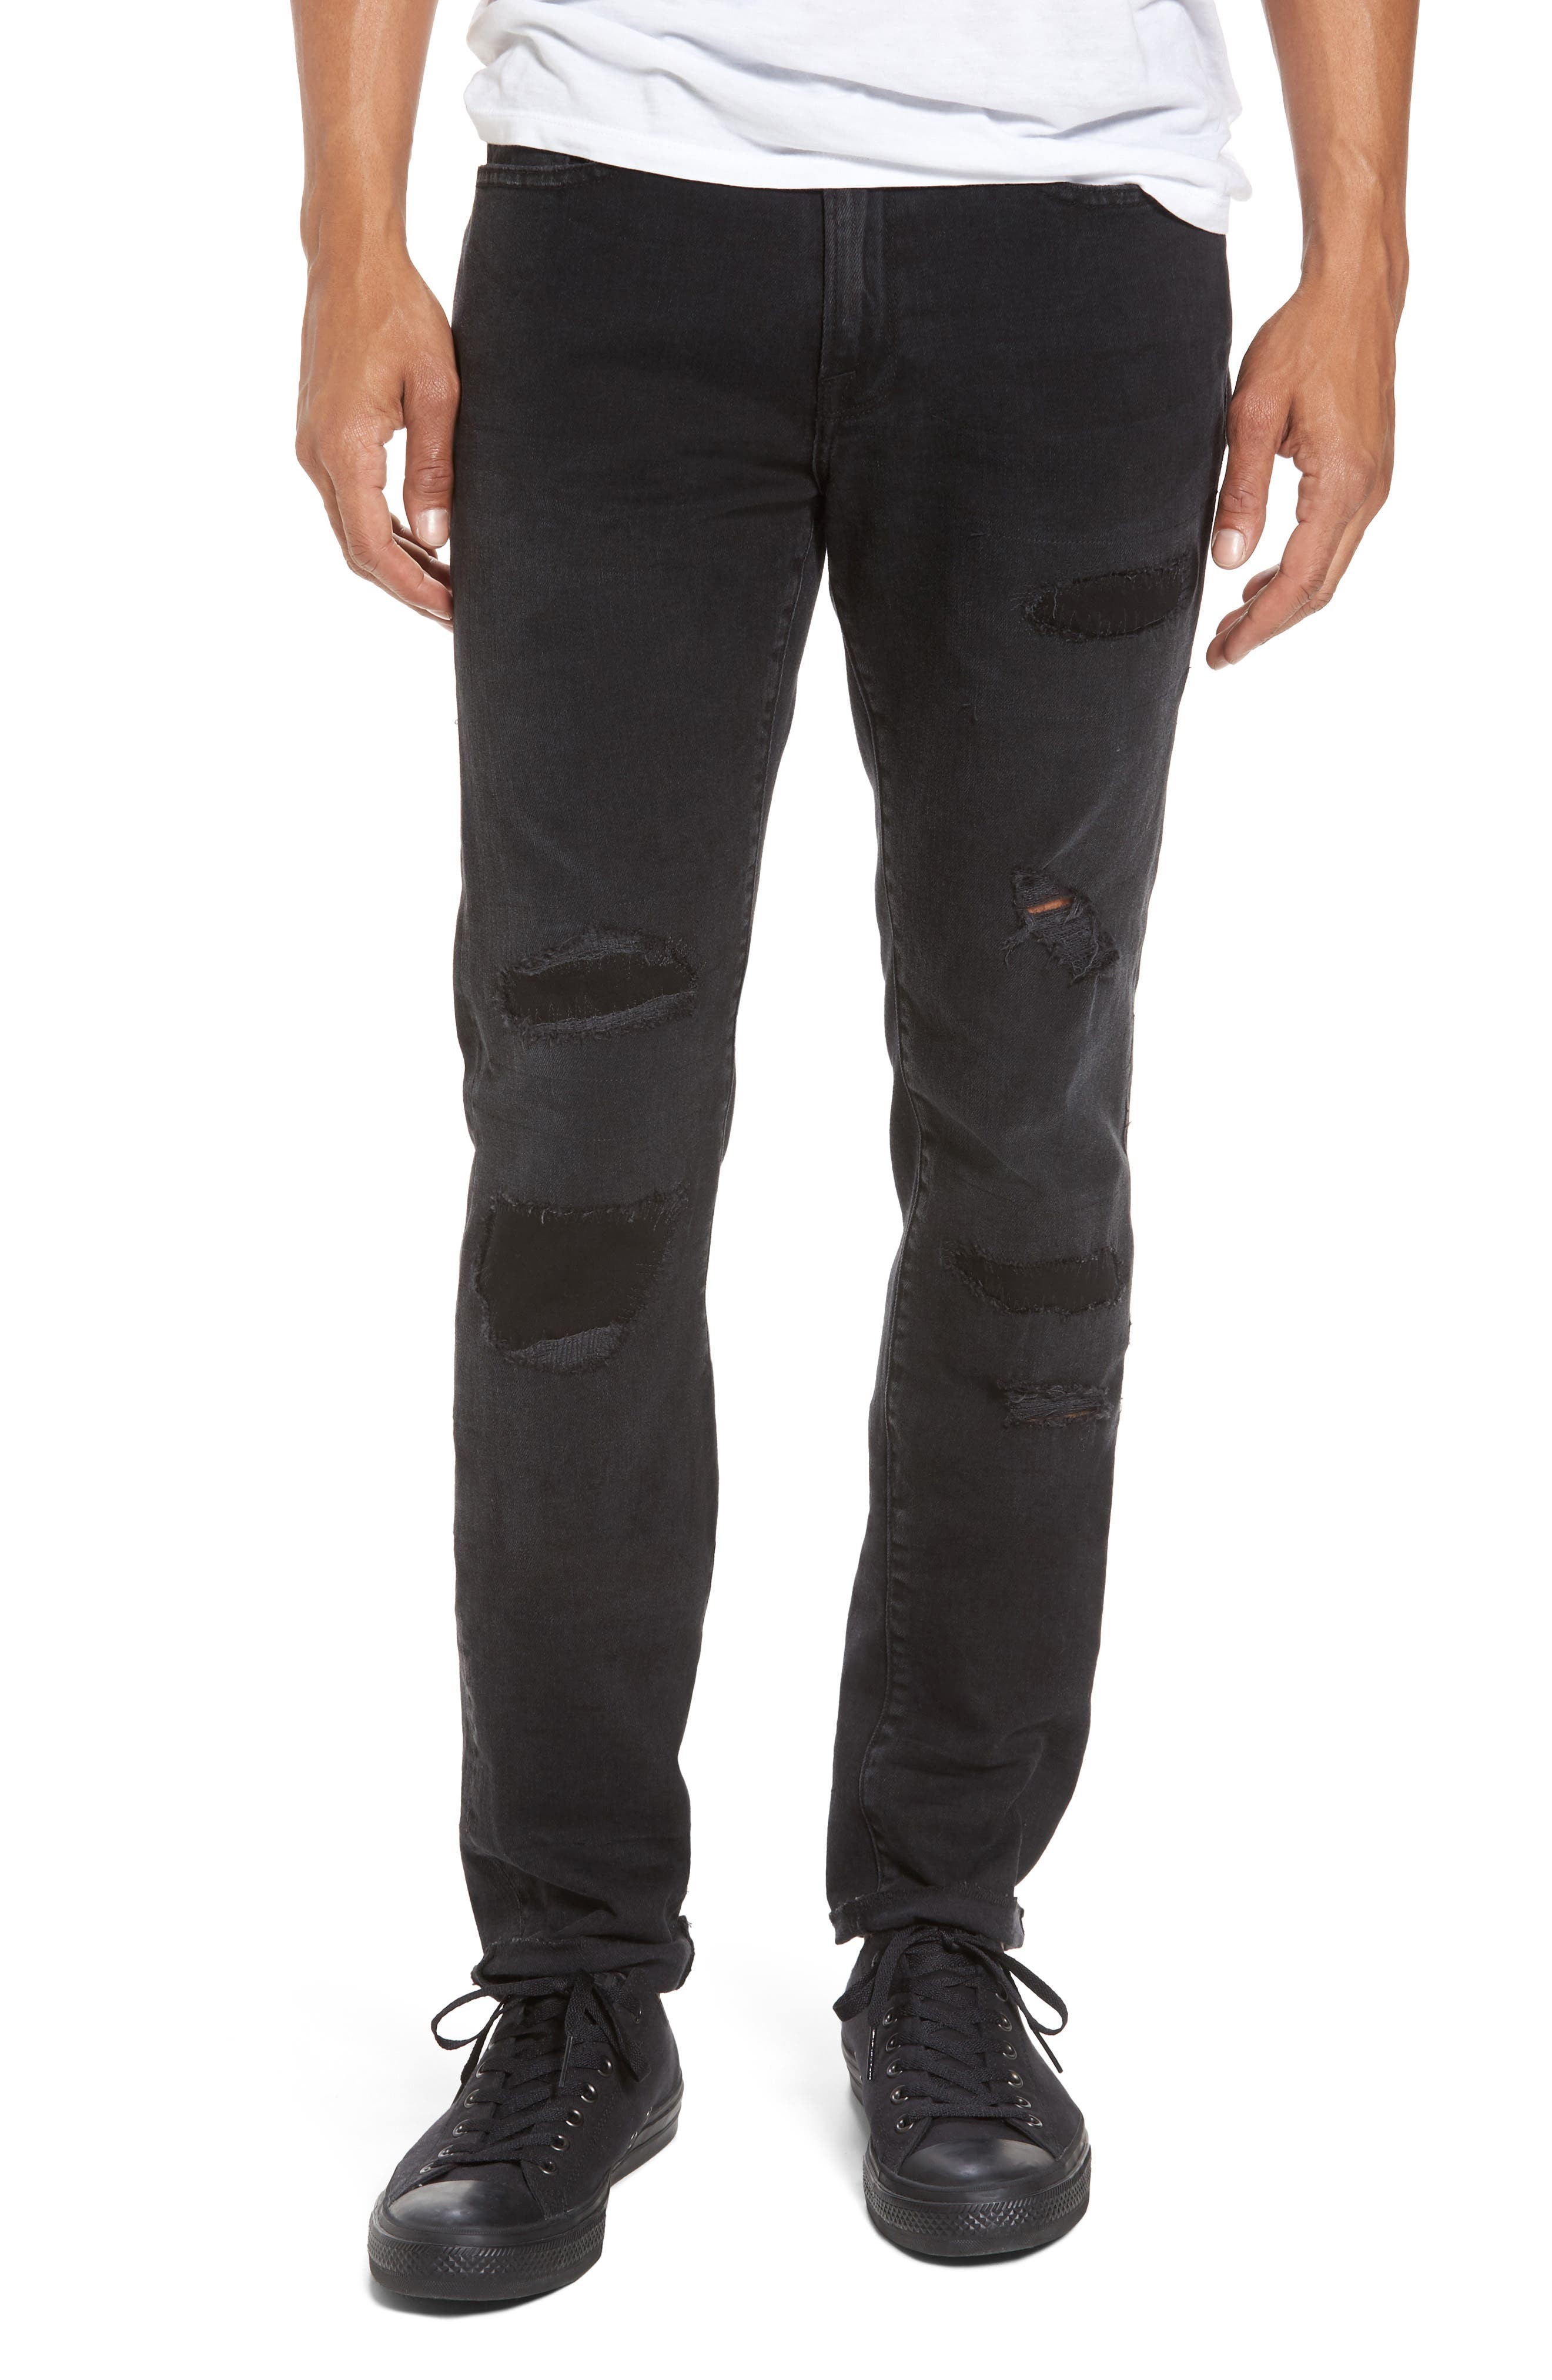 L'Homme Skinny Fit Jeans,                             Main thumbnail 1, color,                             001